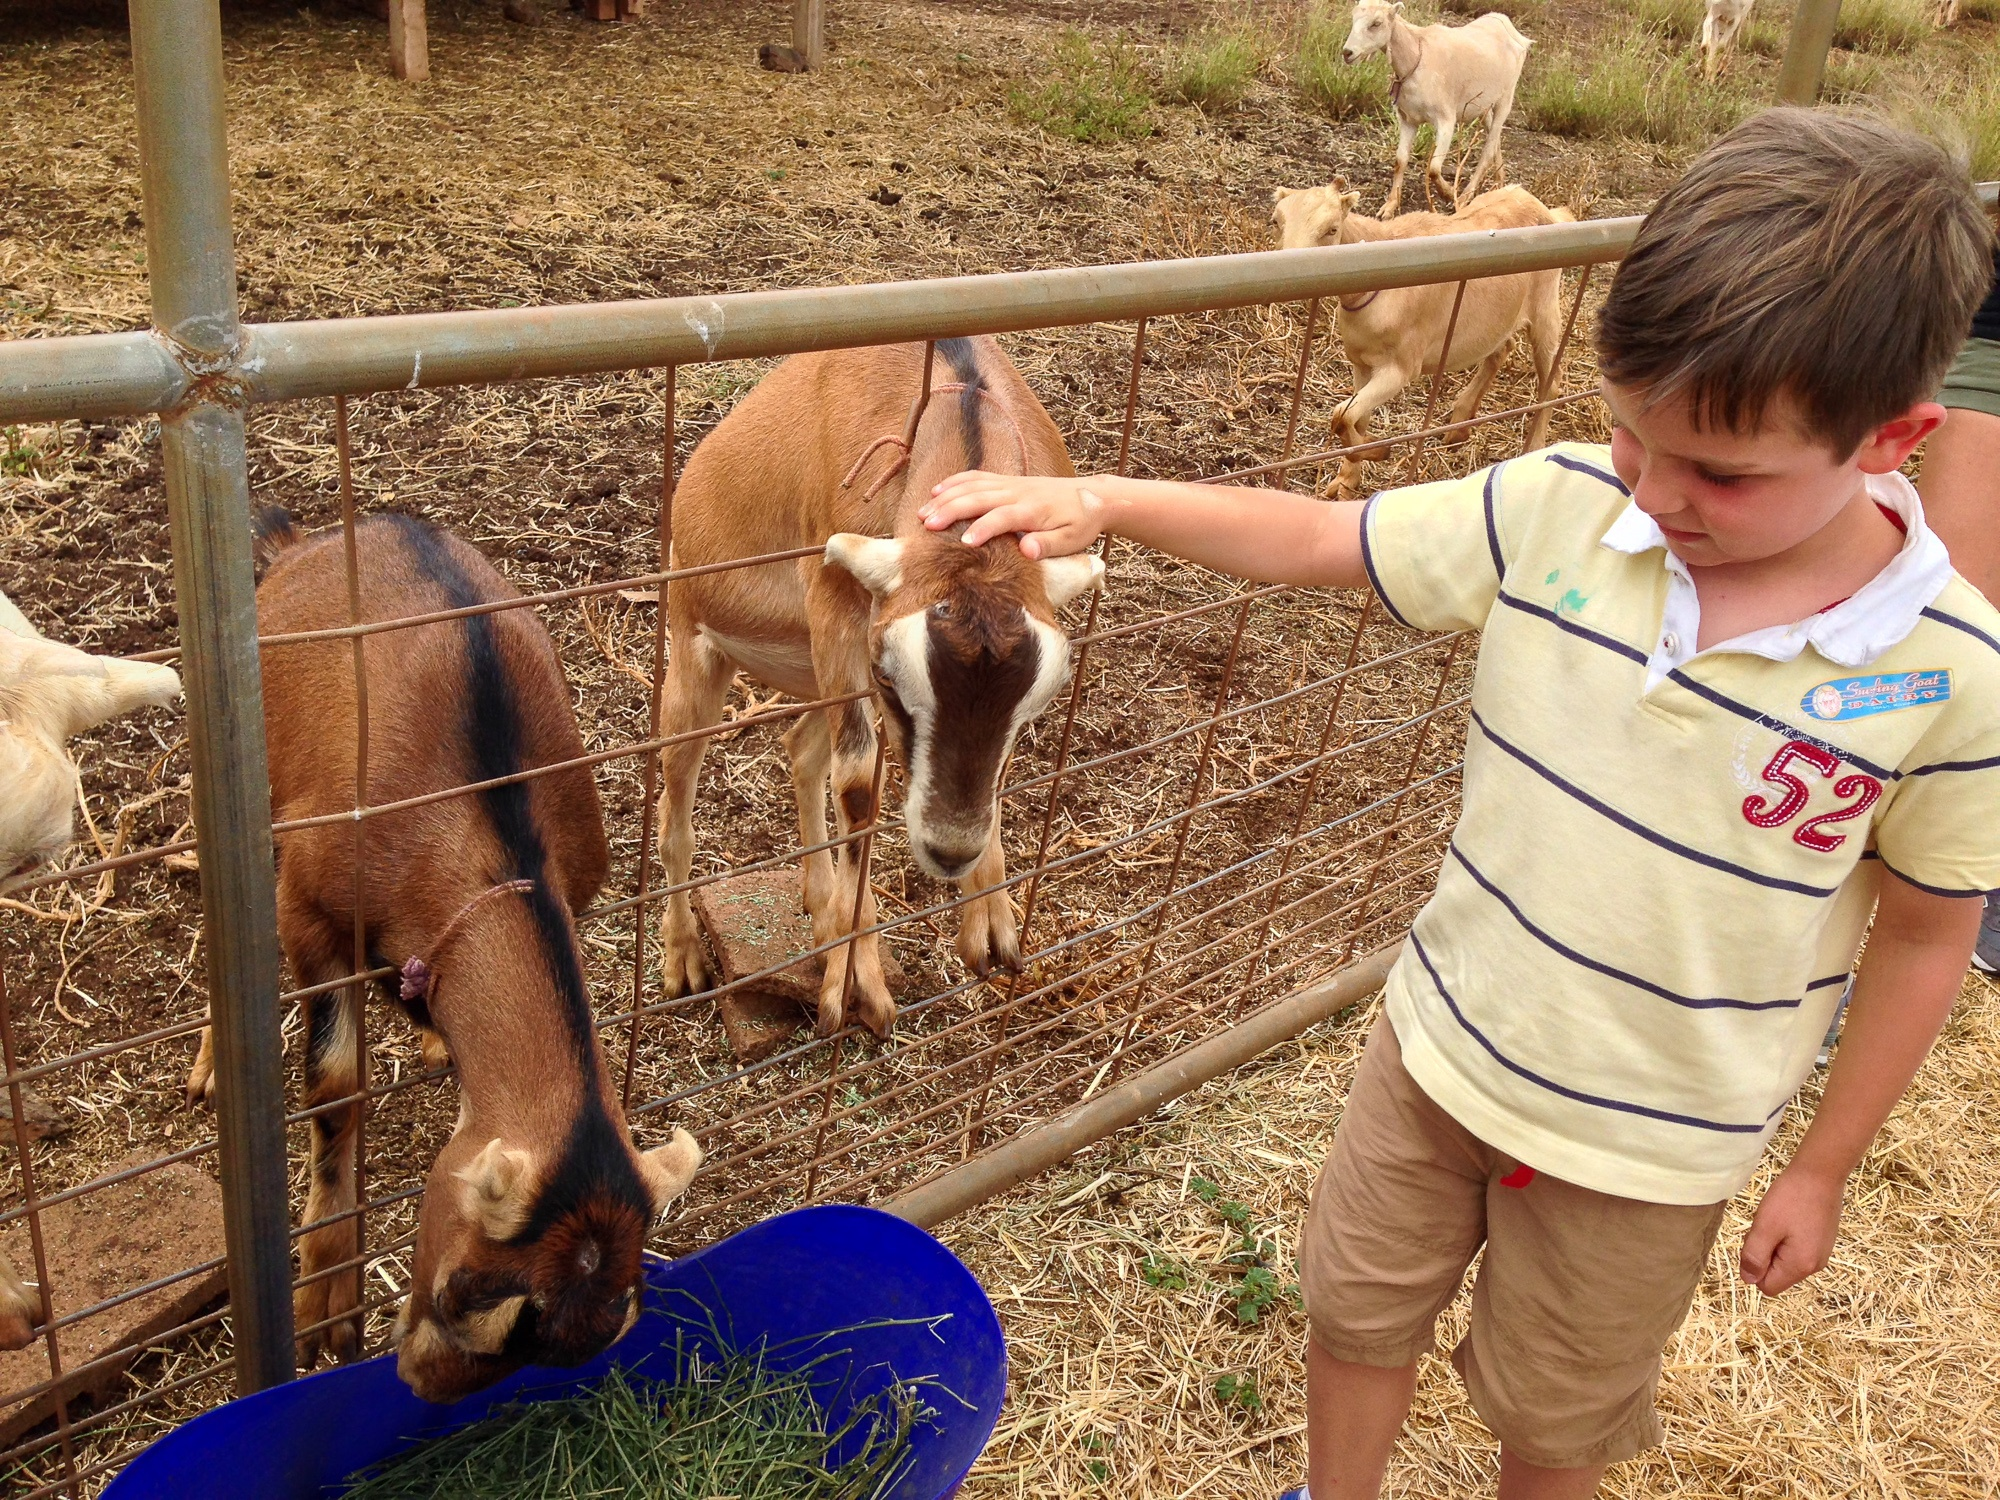 Child petting goats at the Surfing Goat Dairy Farm on Maui